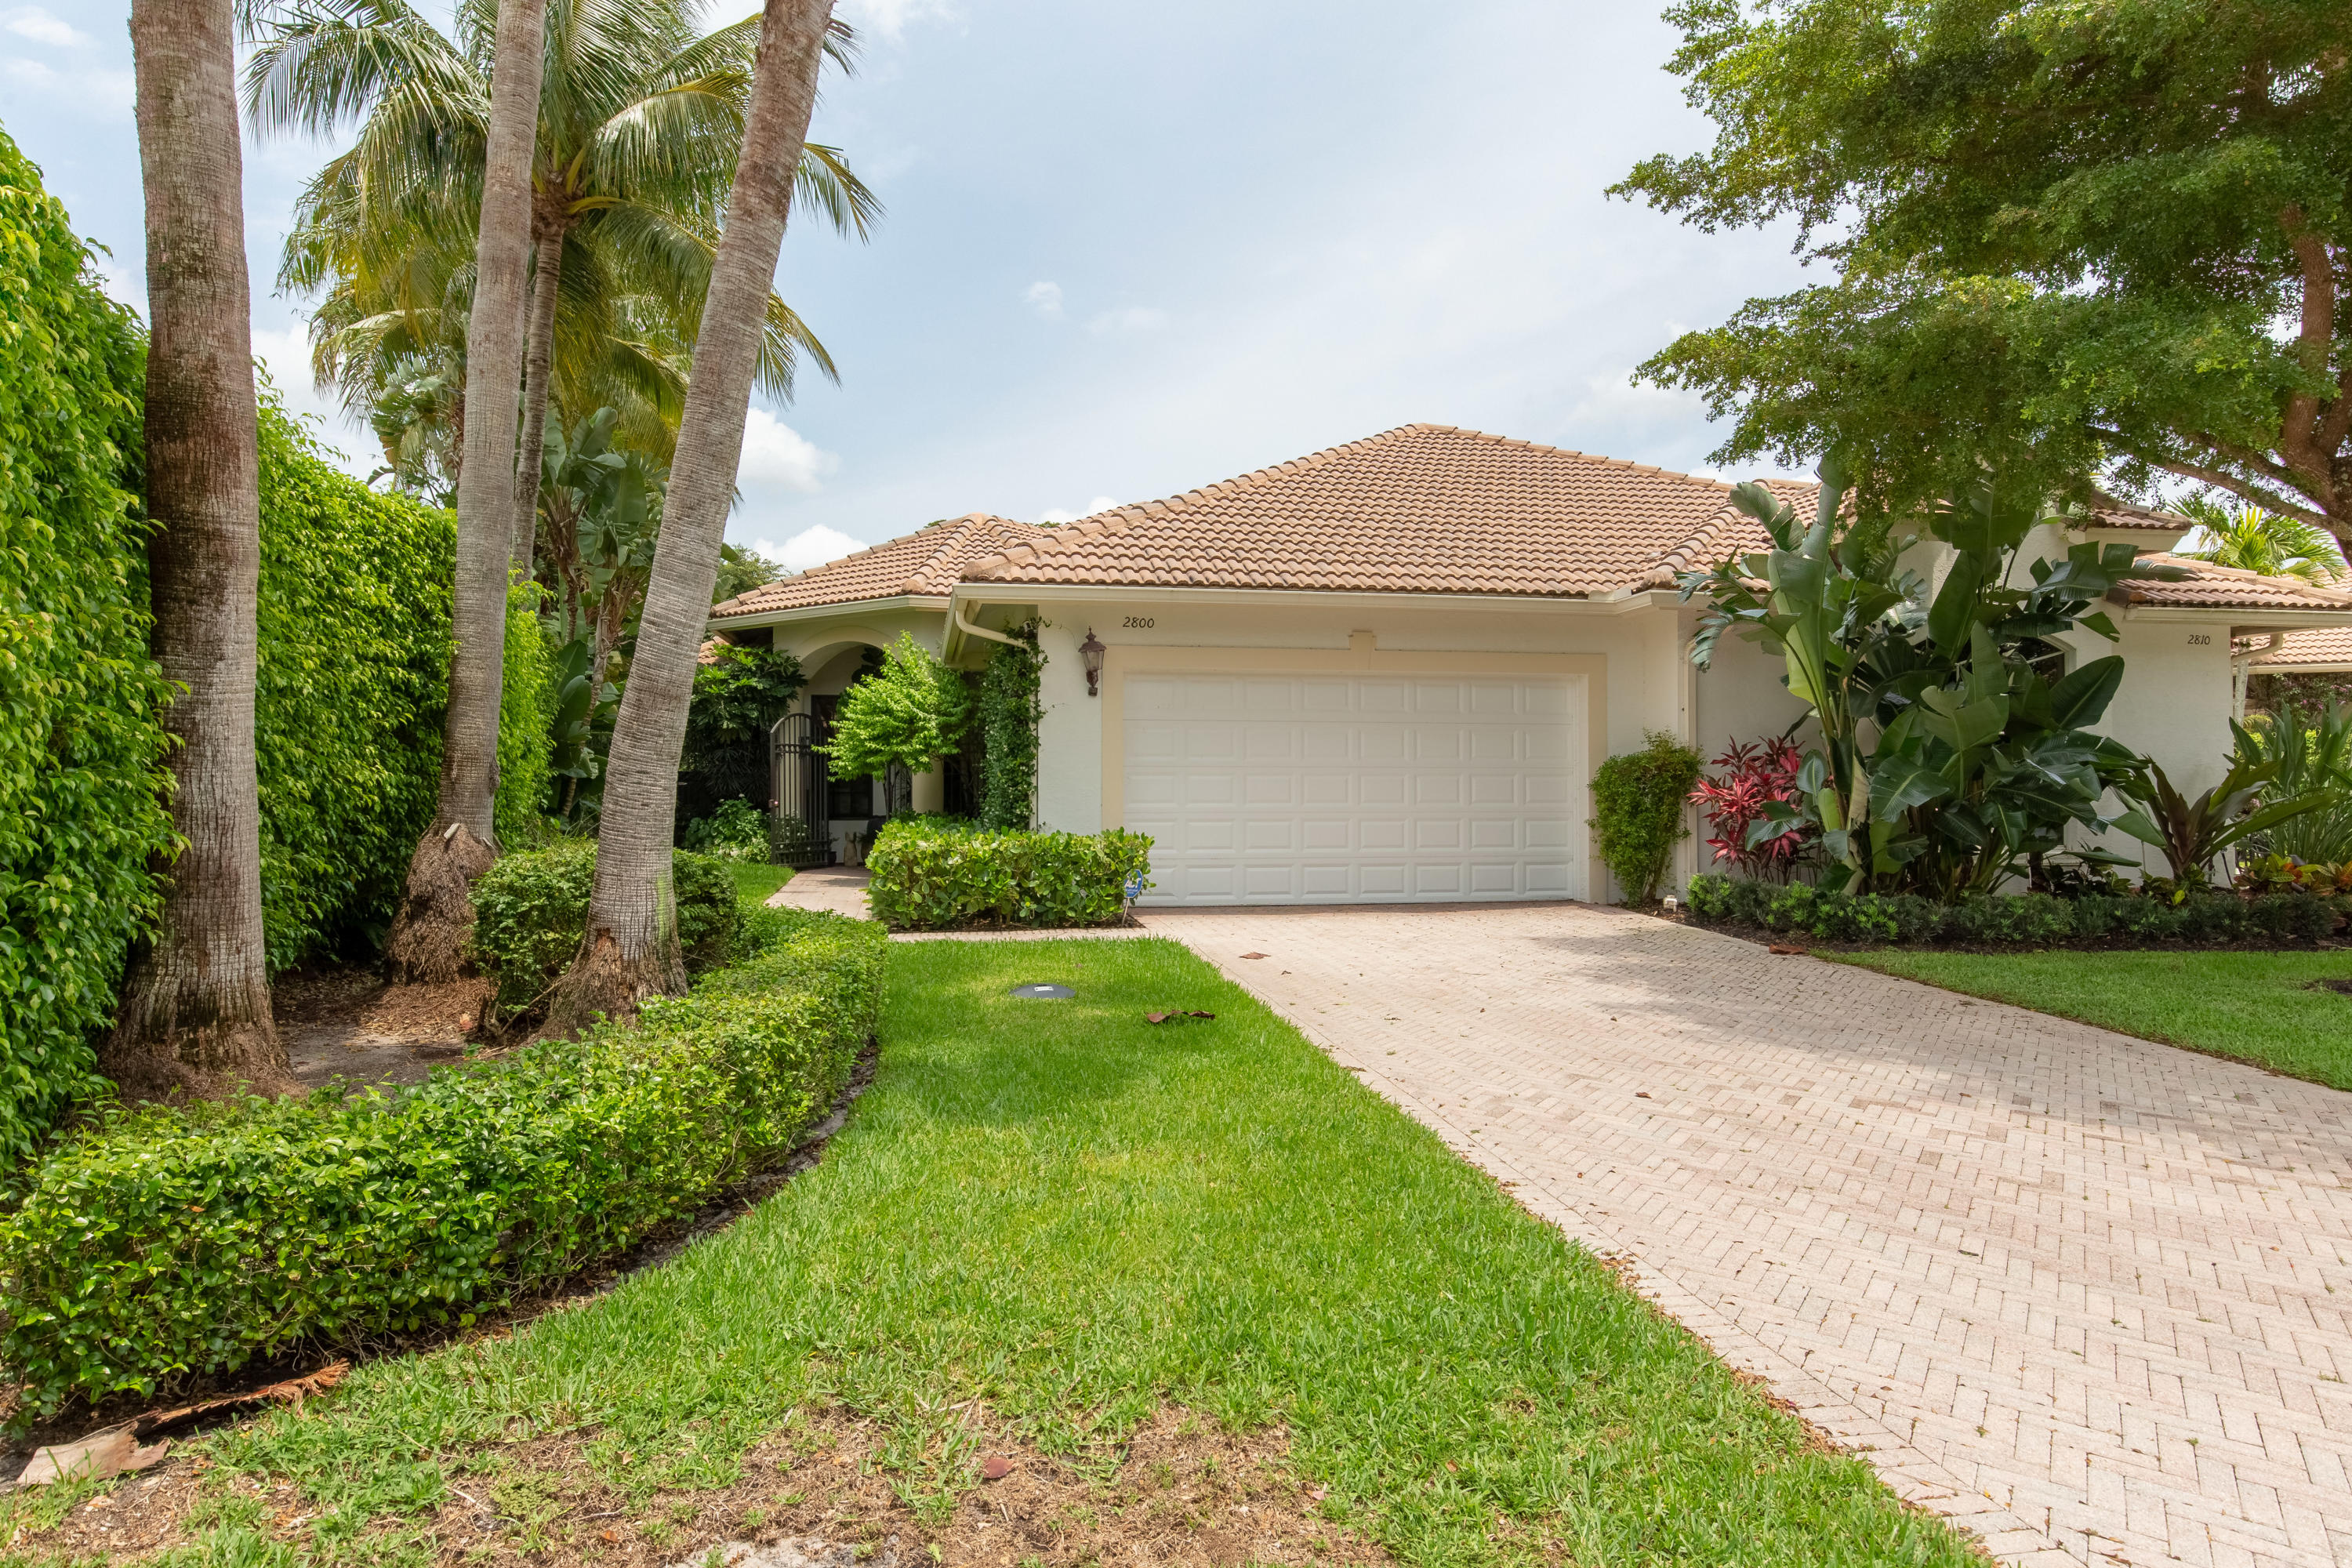 2800 Twin Oaks Way, Wellington, Florida 33414, 3 Bedrooms Bedrooms, ,3 BathroomsBathrooms,Condo/Coop,For Sale,Twin Oaks,1,RX-10532584